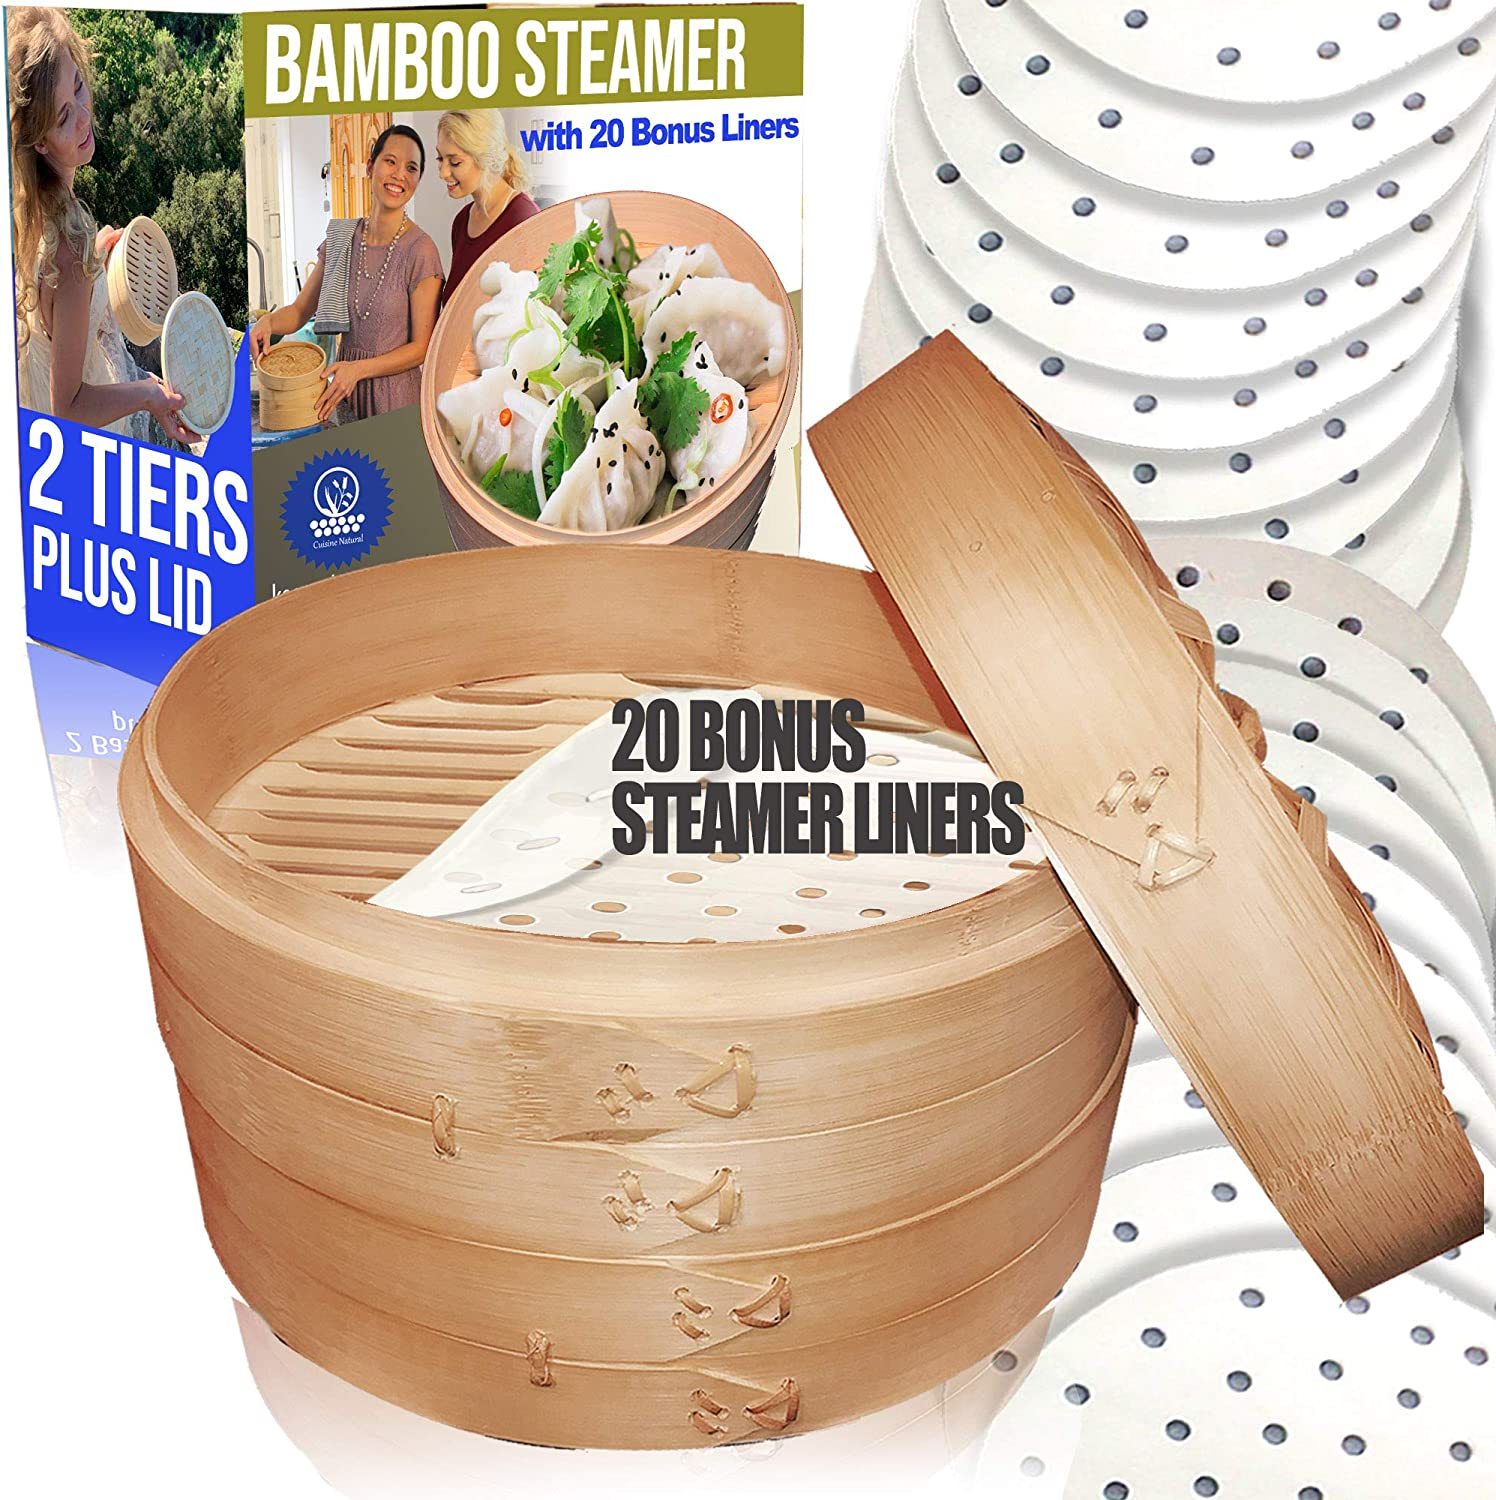 Bamboo Steamer/ 2 Tiers